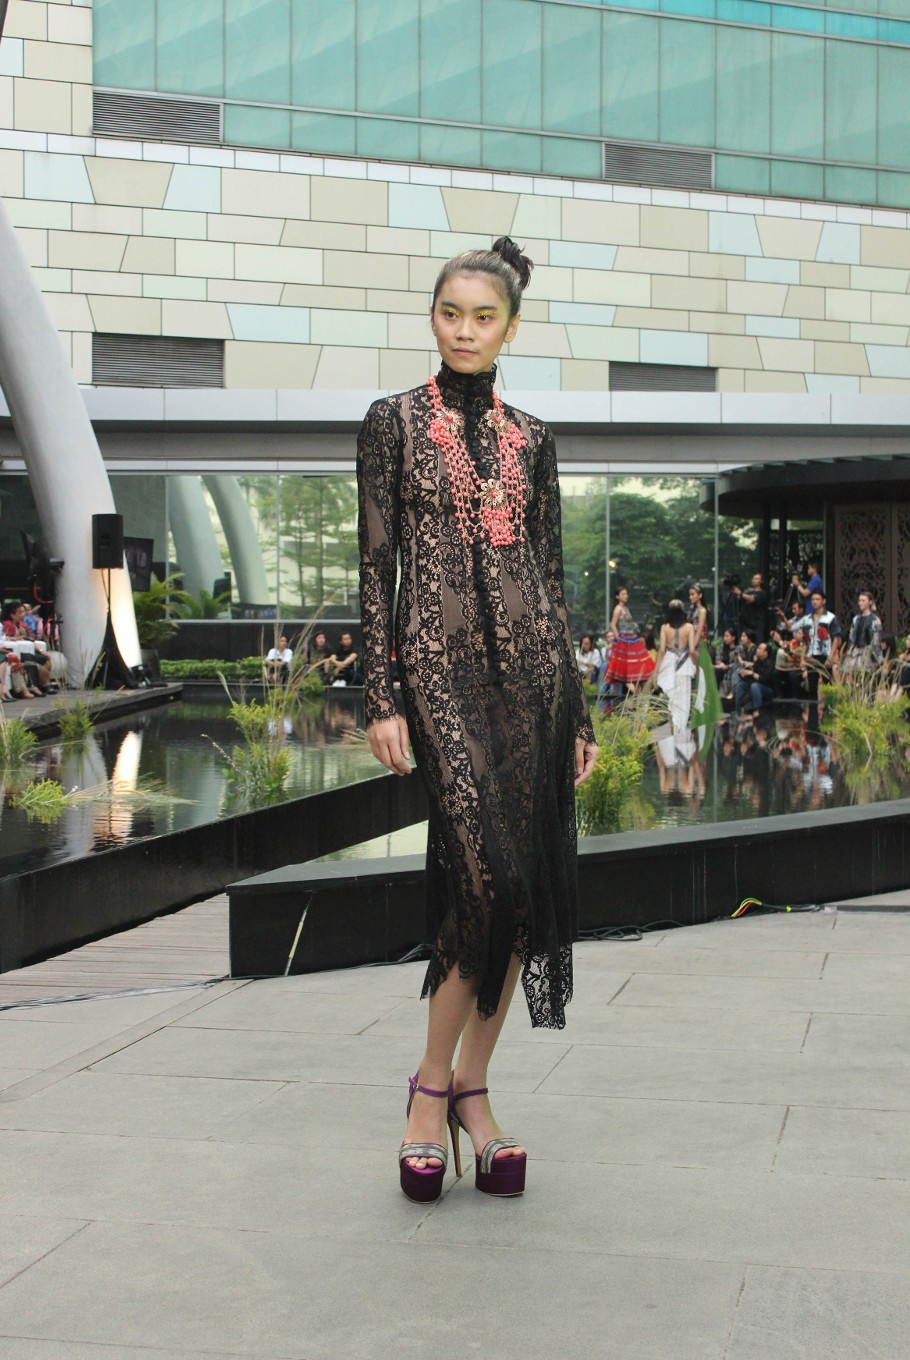 A model walks down the runway wearing an outfit designed by Billy Tjong during the Serenade of Tenun Doyo fashion show.